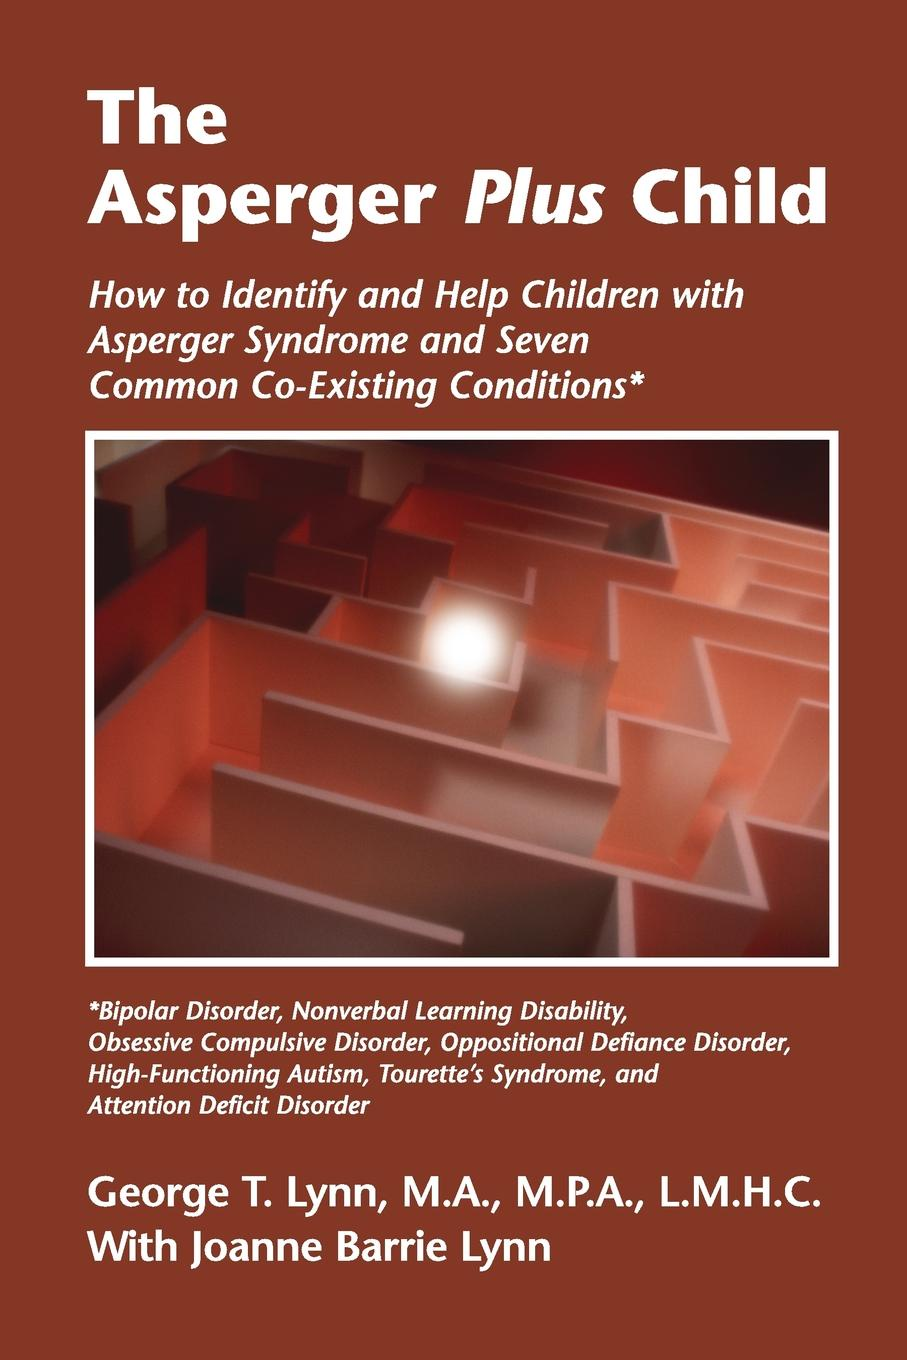 George T. Lynn MA MPA LMHC, Joanne Barrie Lynn The Asperger Plus Child. How to Identify and Help Children with Asperger Syndrome and Seven Common Co-Existing Conditions lynn leslie the other amanda